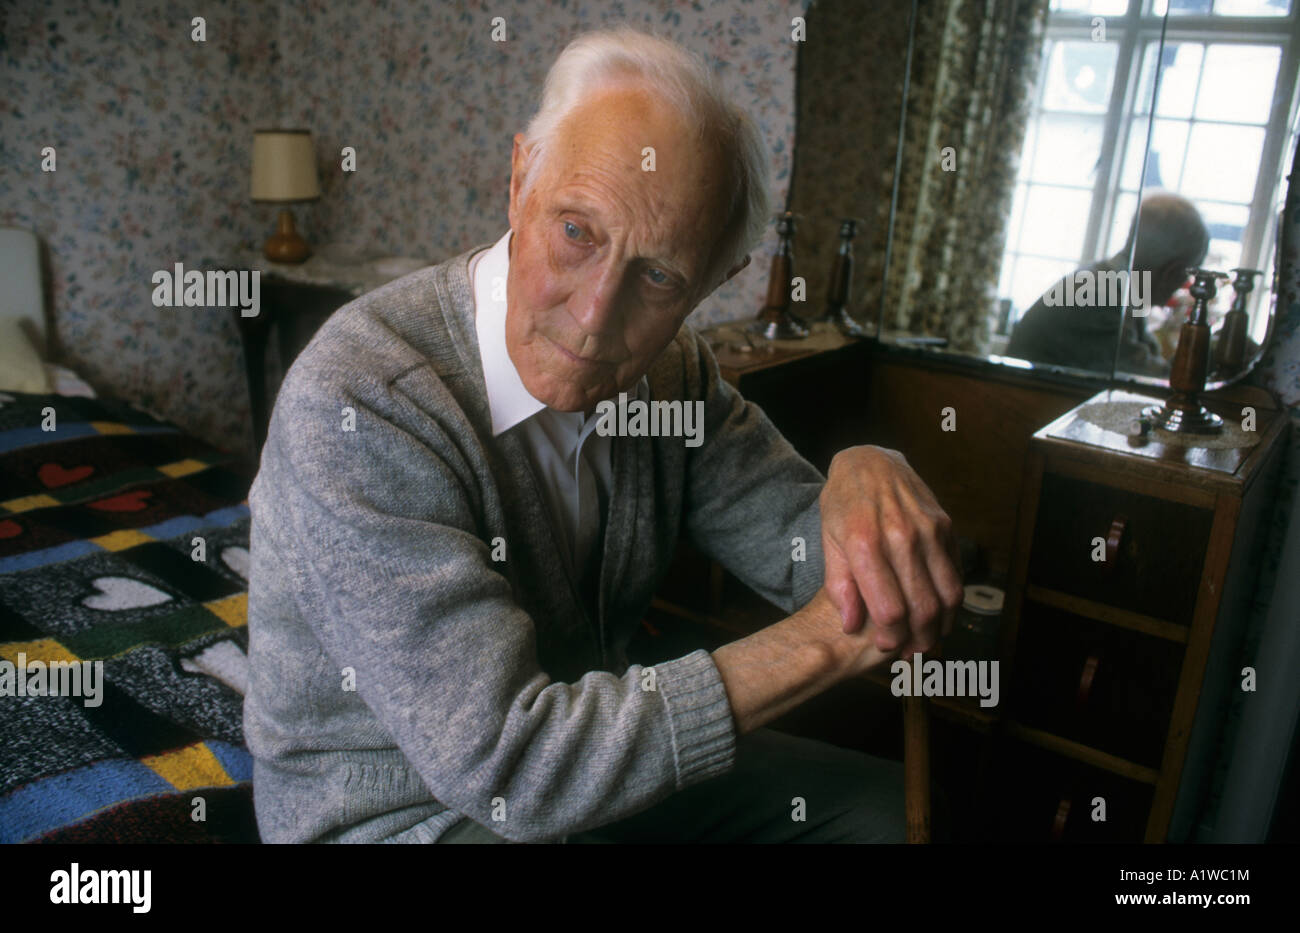 Old Age,Portrait Of A Senior Man In His Late Eighties Stock Photo